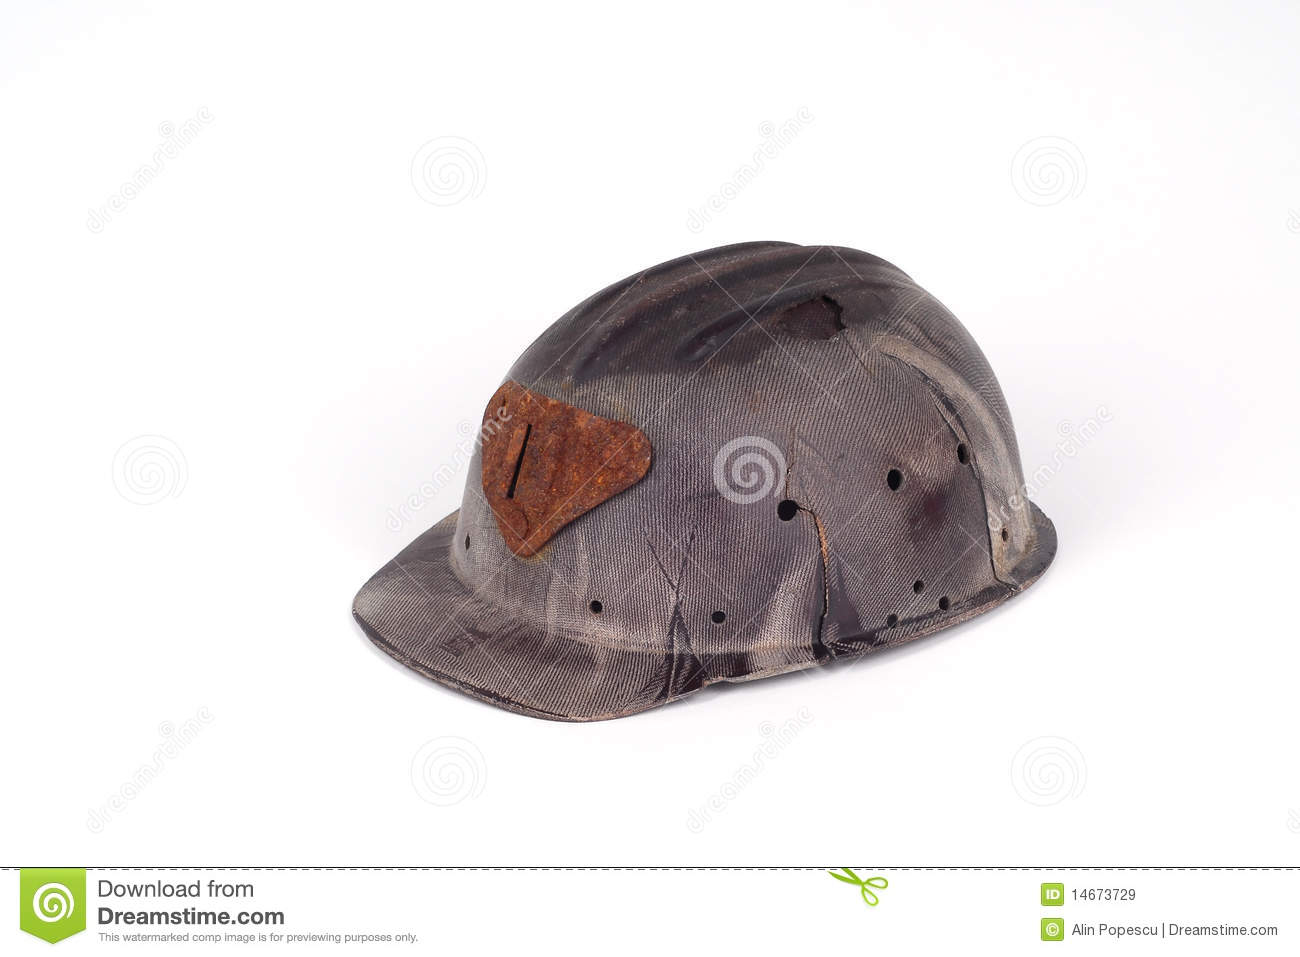 casque de bak lite d 39 un mineur images libres de droits image 14673729. Black Bedroom Furniture Sets. Home Design Ideas